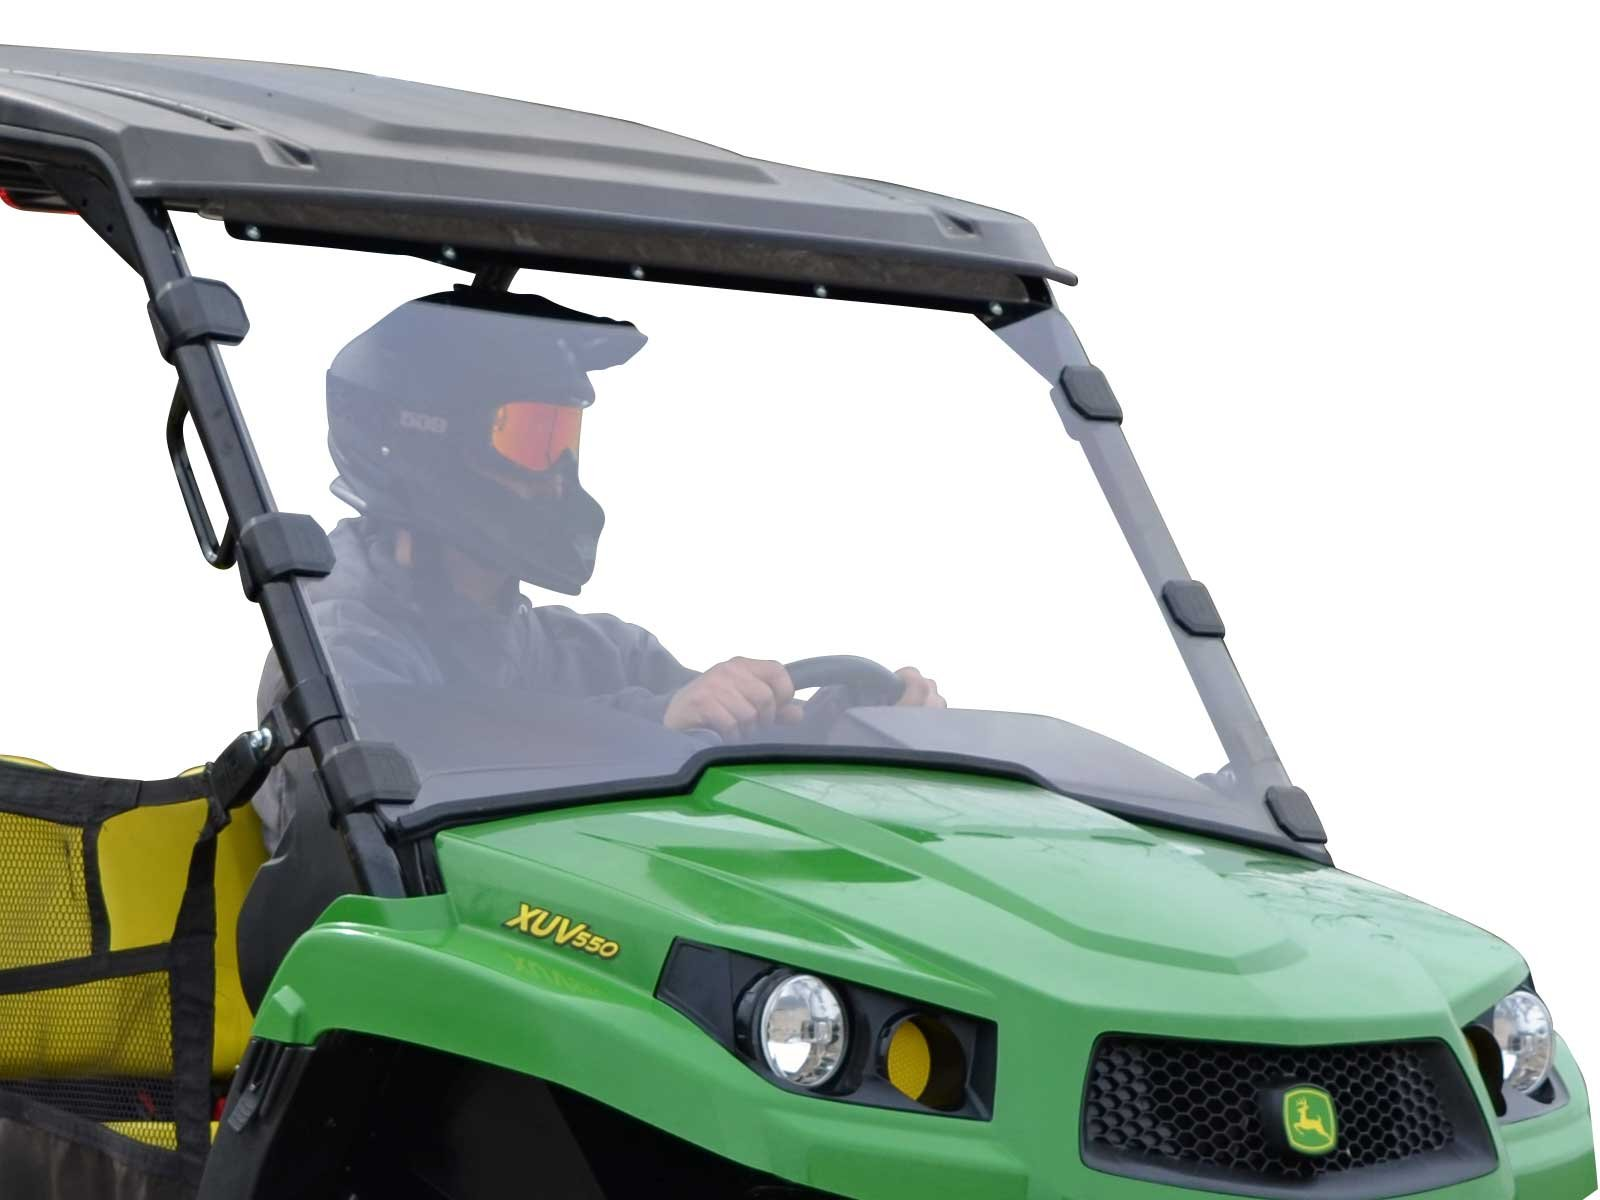 SuperATV Heavy Duty Scratch Resistant Full Windshield for John Deere Gator XUV 550 560 S4 590i (See Fitment For Compatible Years) - Installs in 5 Minutes! by SuperATV.com